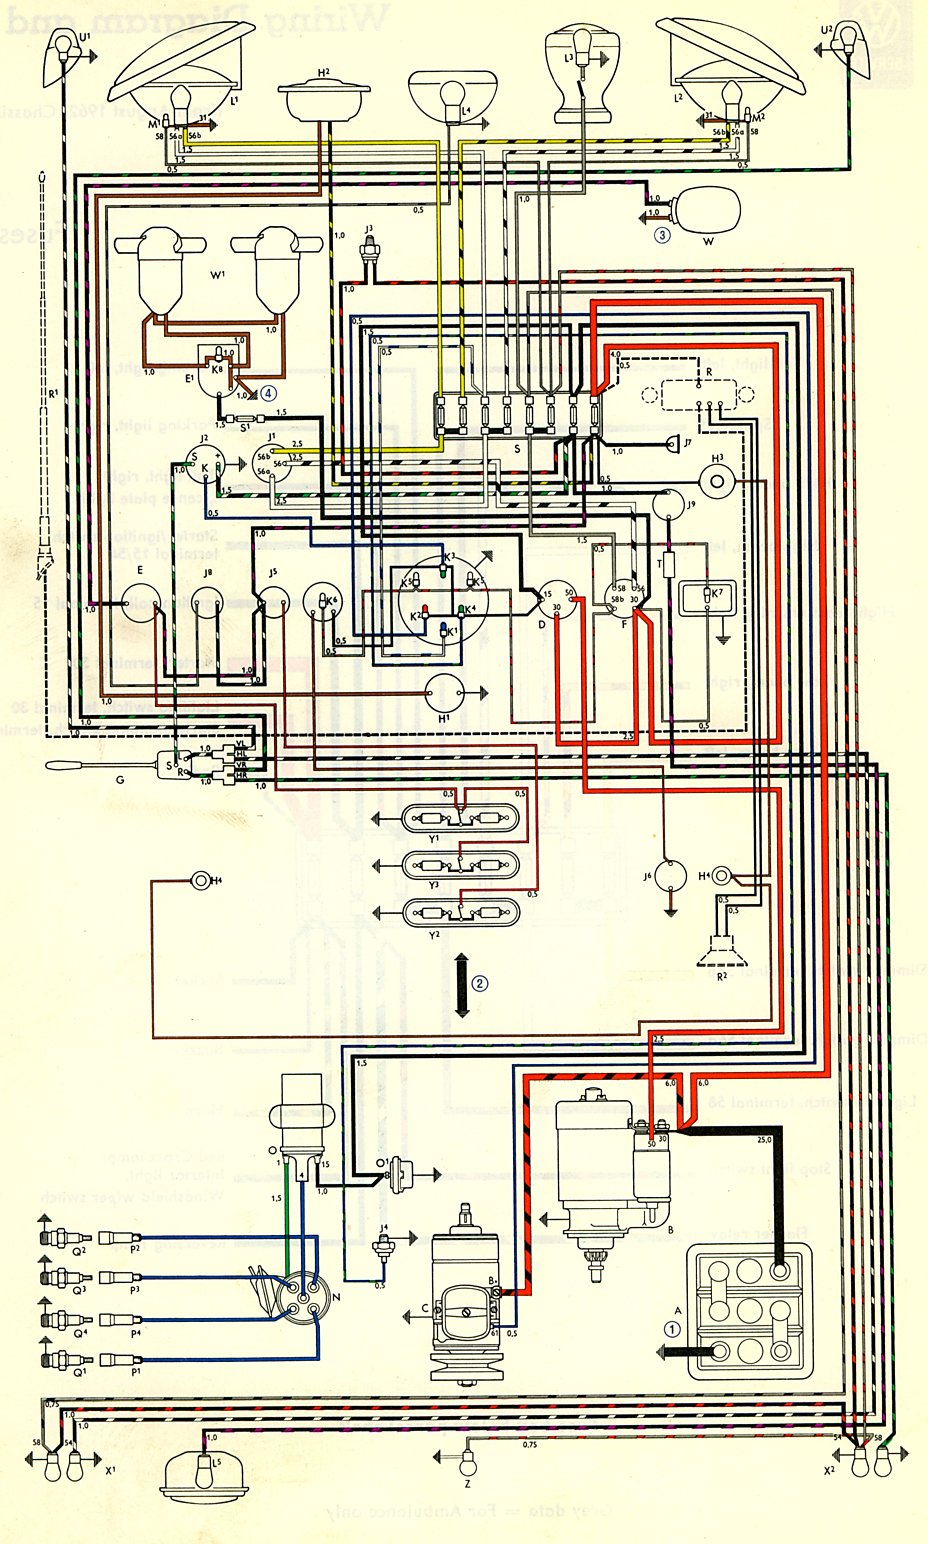 bus_63 1963 bus wiring diagram (usa) thegoldenbug com 1957 vw bug wiring diagram at edmiracle.co